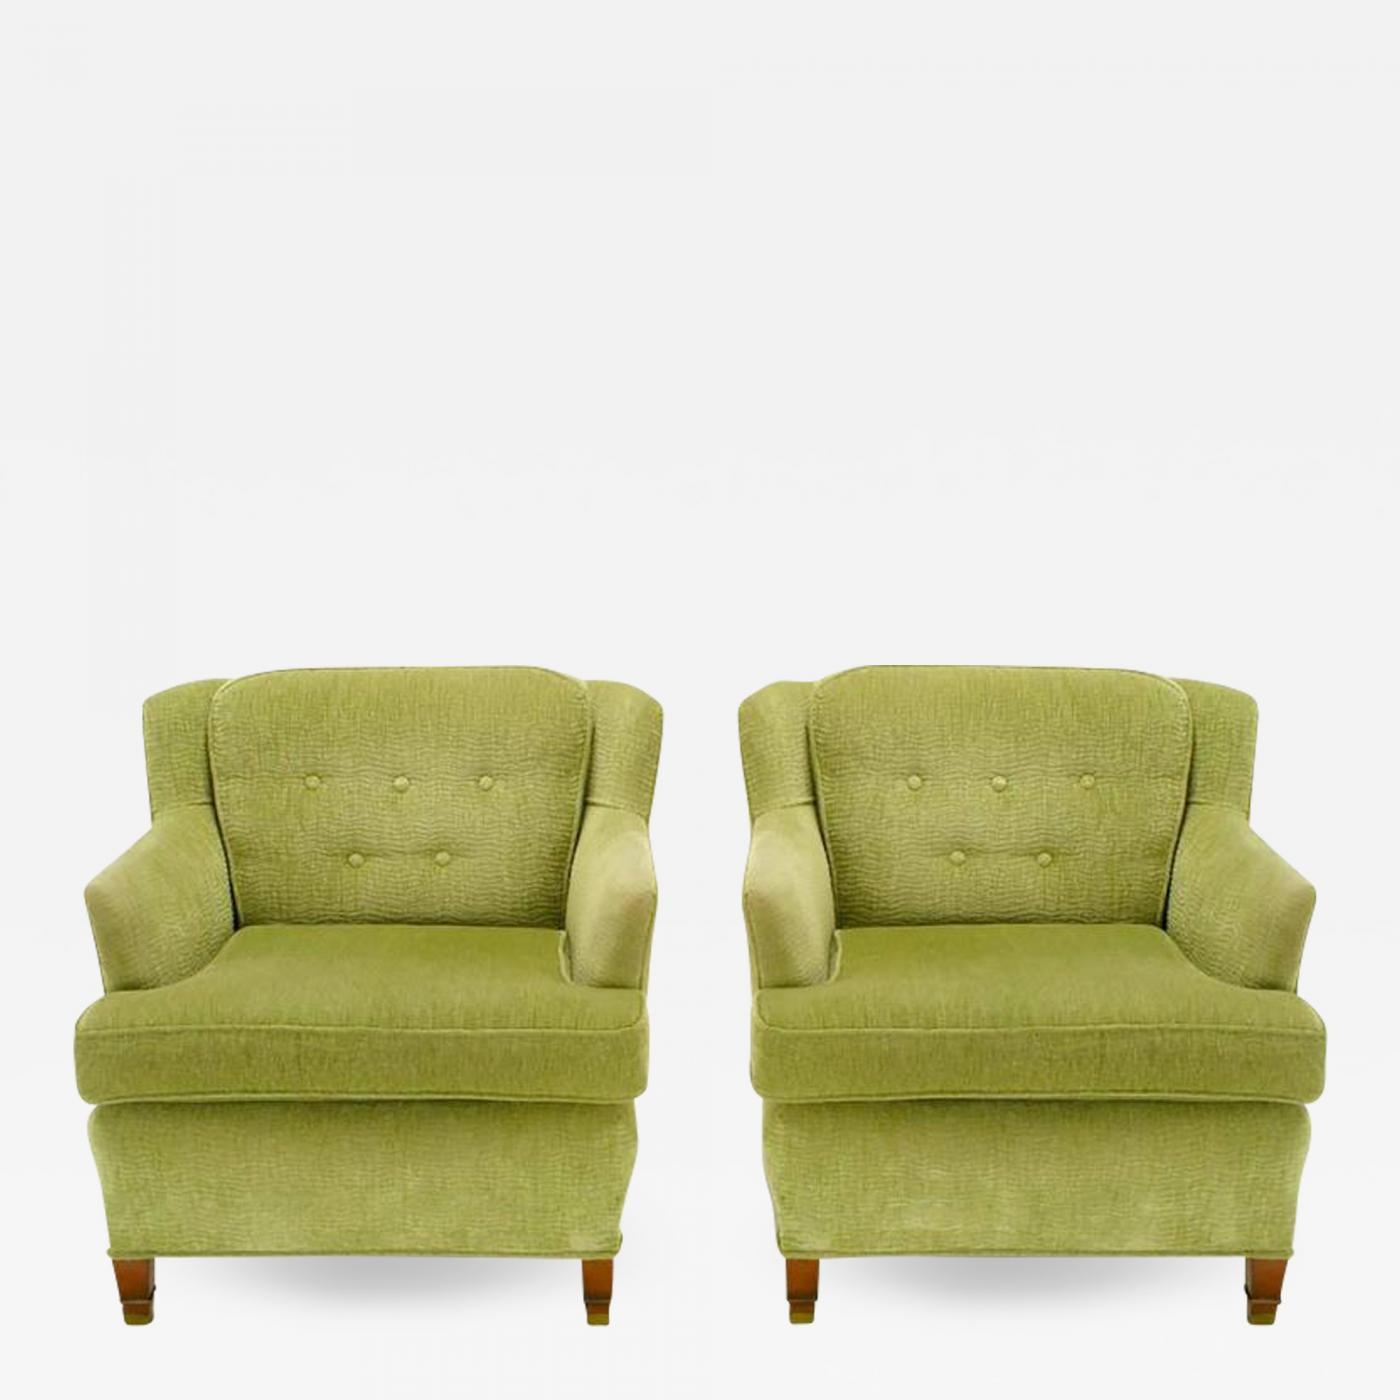 Pair Of Pistachio Green Chenille Button Tufted Low Barrel Back Wing Chairs